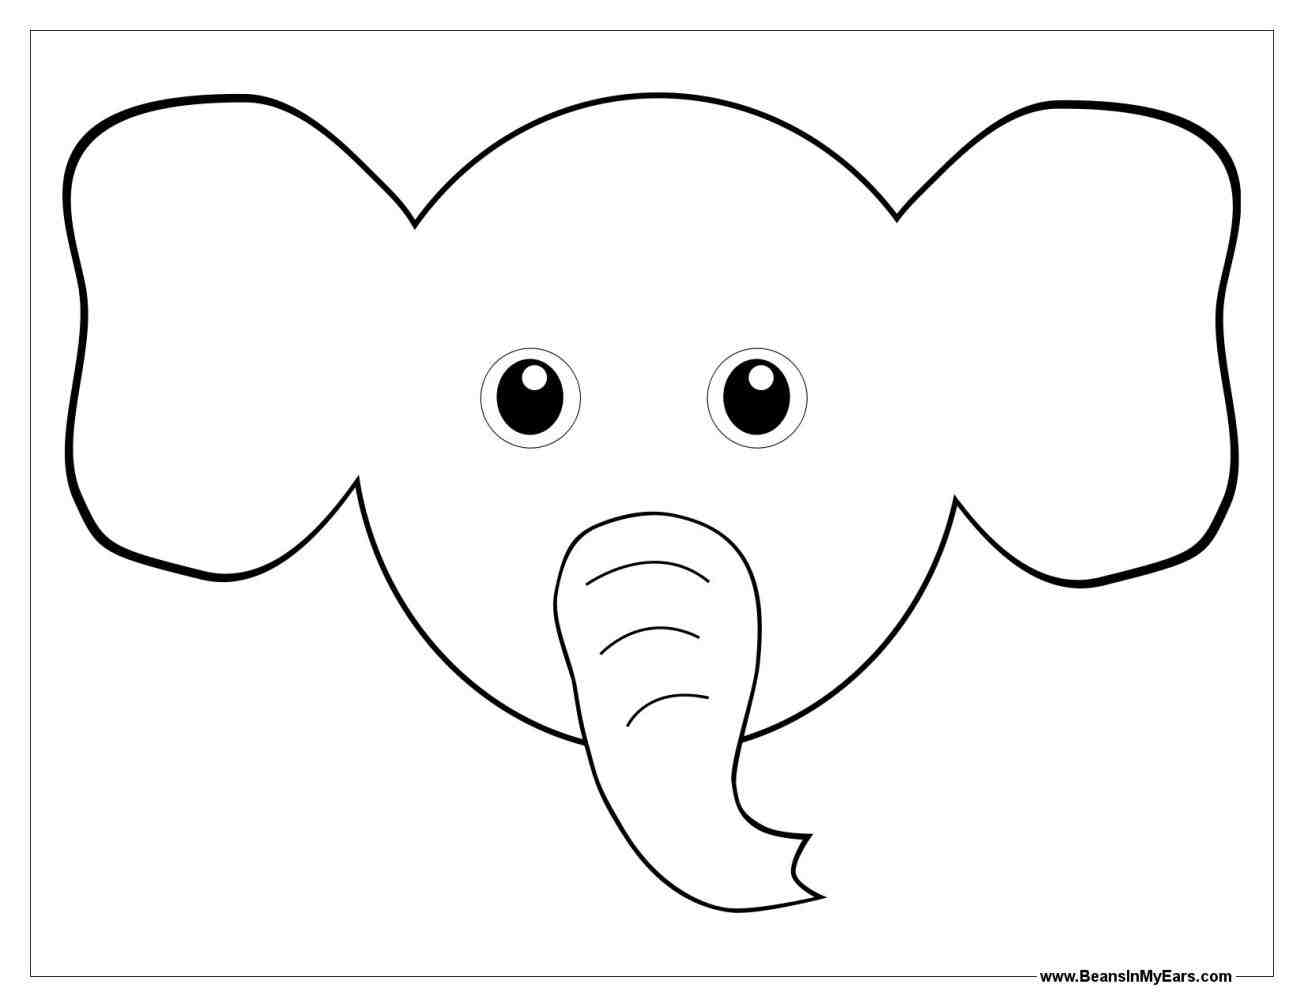 Elephant Drawings | Free download on ClipArtMag